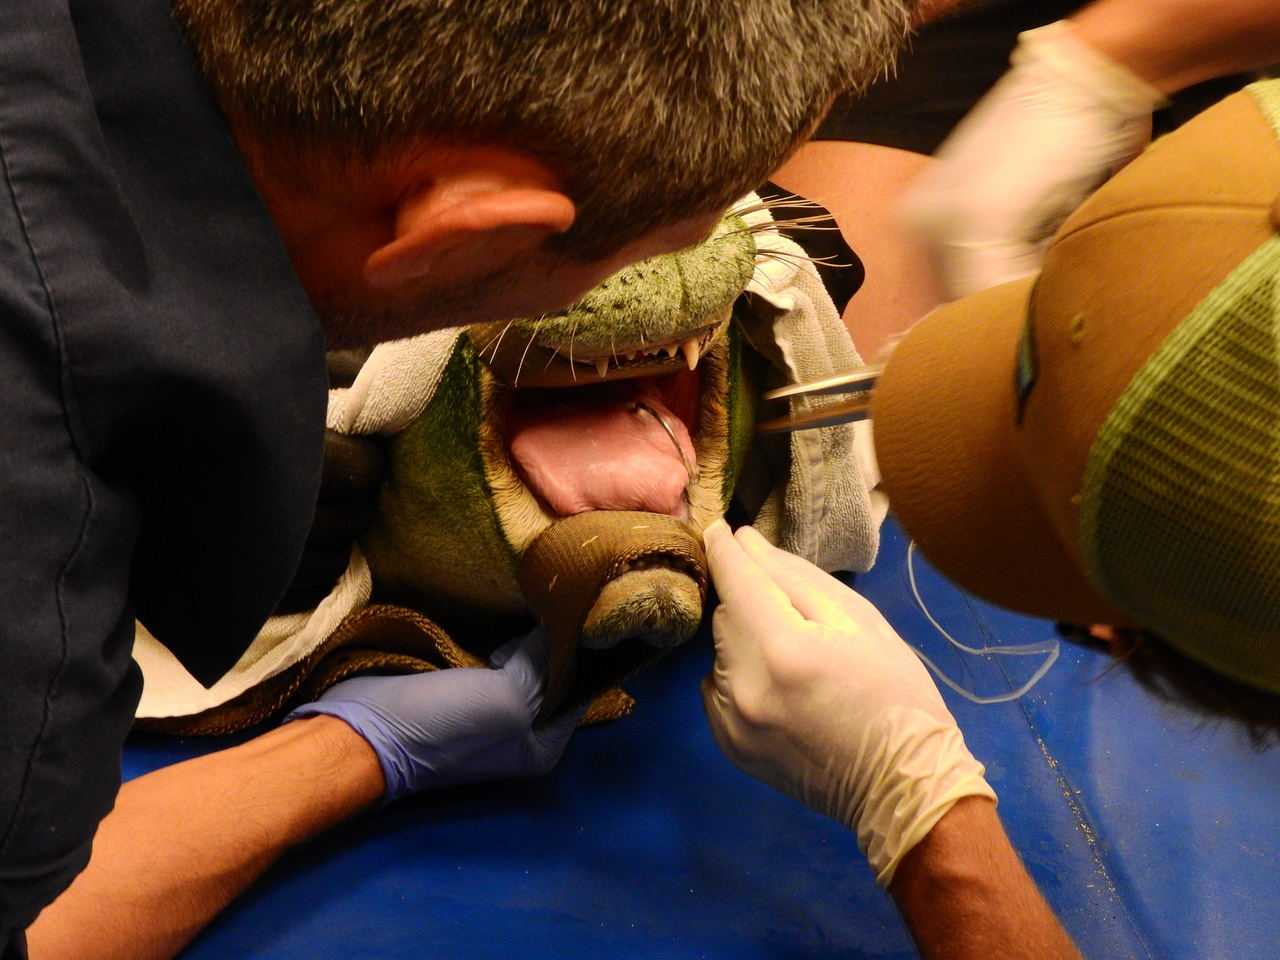 A NOAA veterinarian and team removes large barbed circle hook from RH32 while under sedation at the NOAA Facility on Ford Island